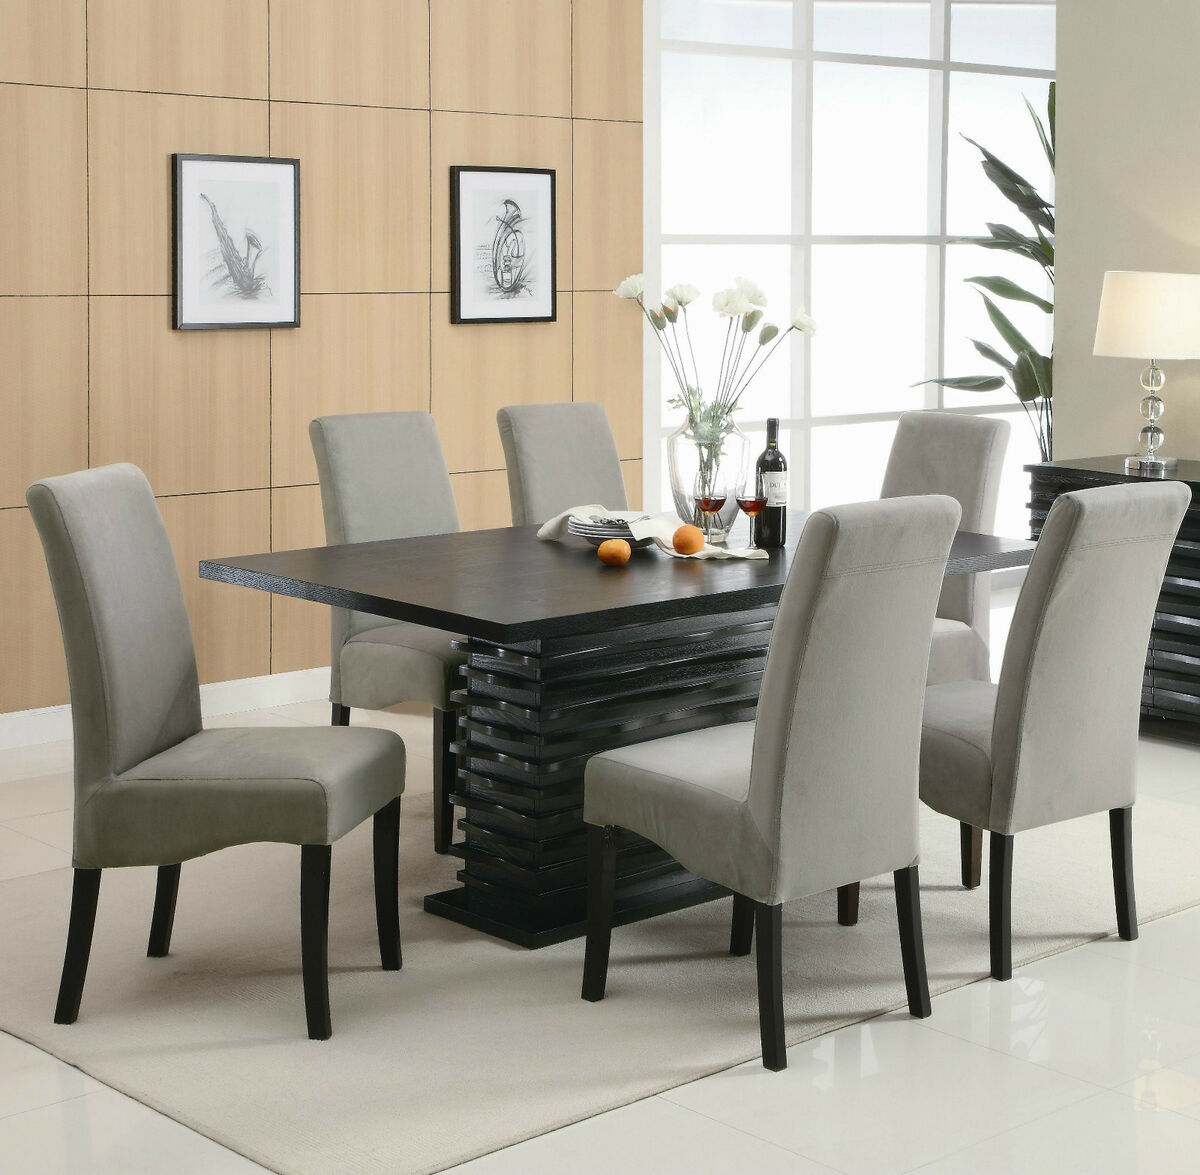 Contemporary Dining Room Table: CONTEMPORARY BLACK DINING TABLE CHAIRS DINING ROOM